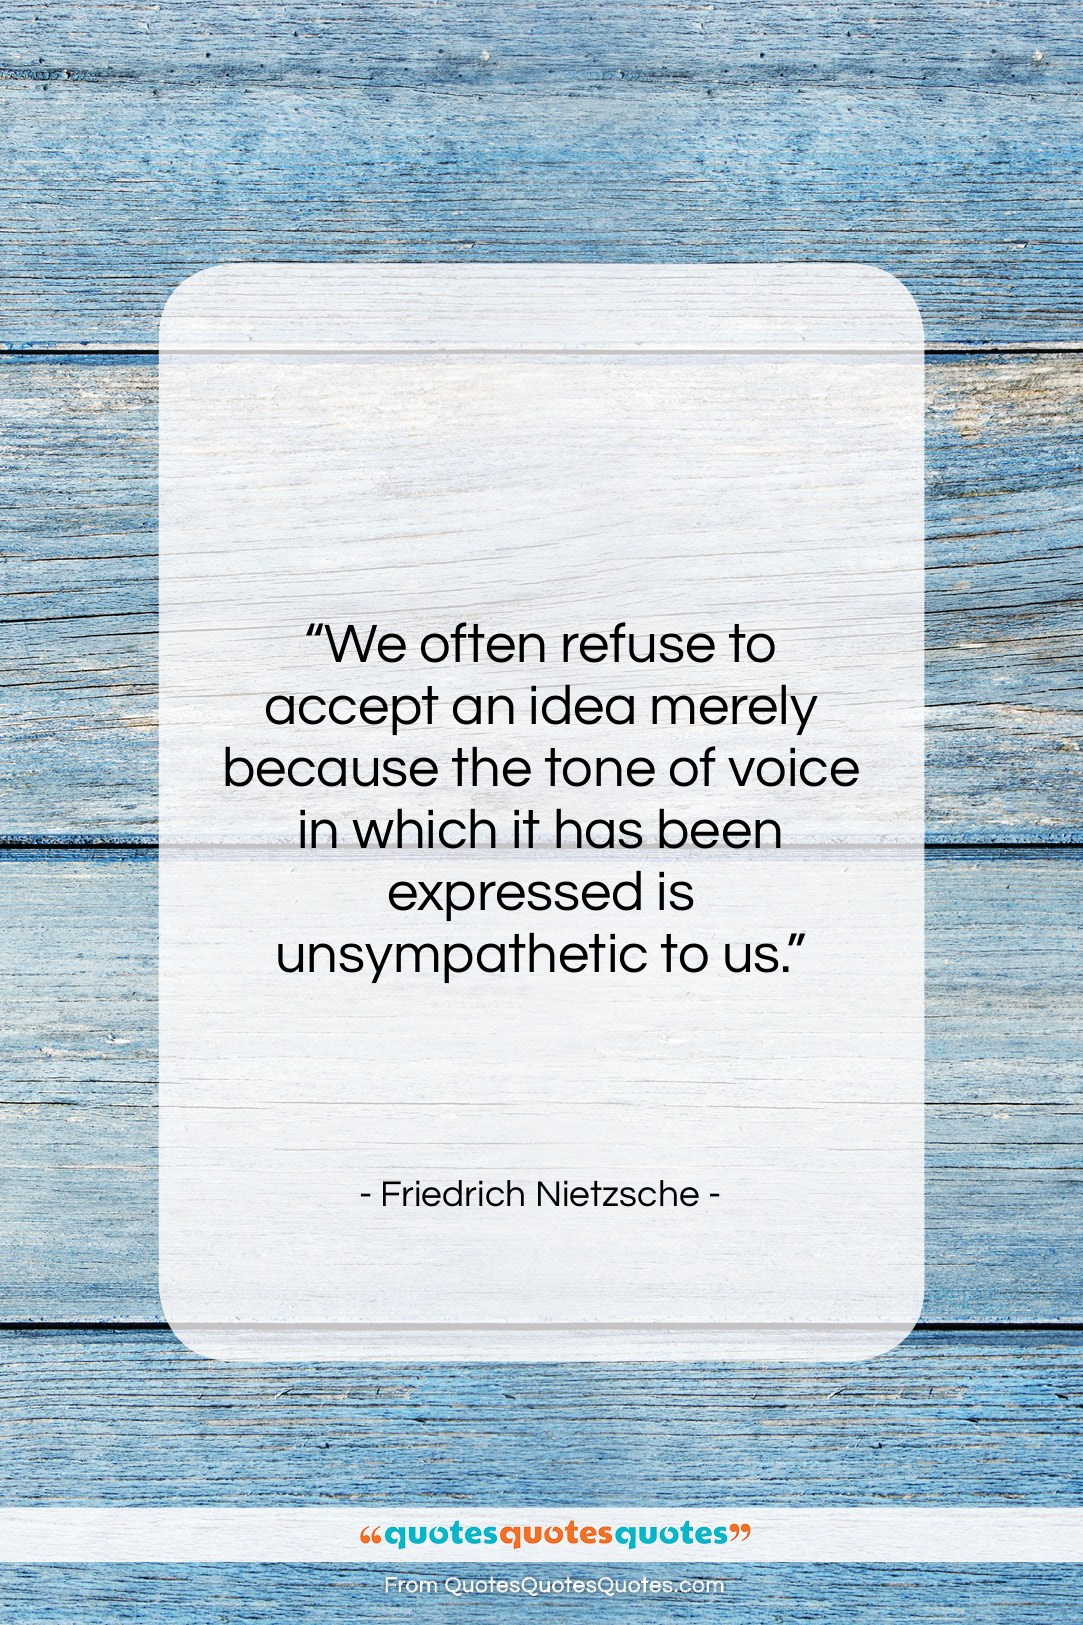 """Friedrich Nietzsche quote: """"We often refuse to accept an idea…""""- at QuotesQuotesQuotes.com"""